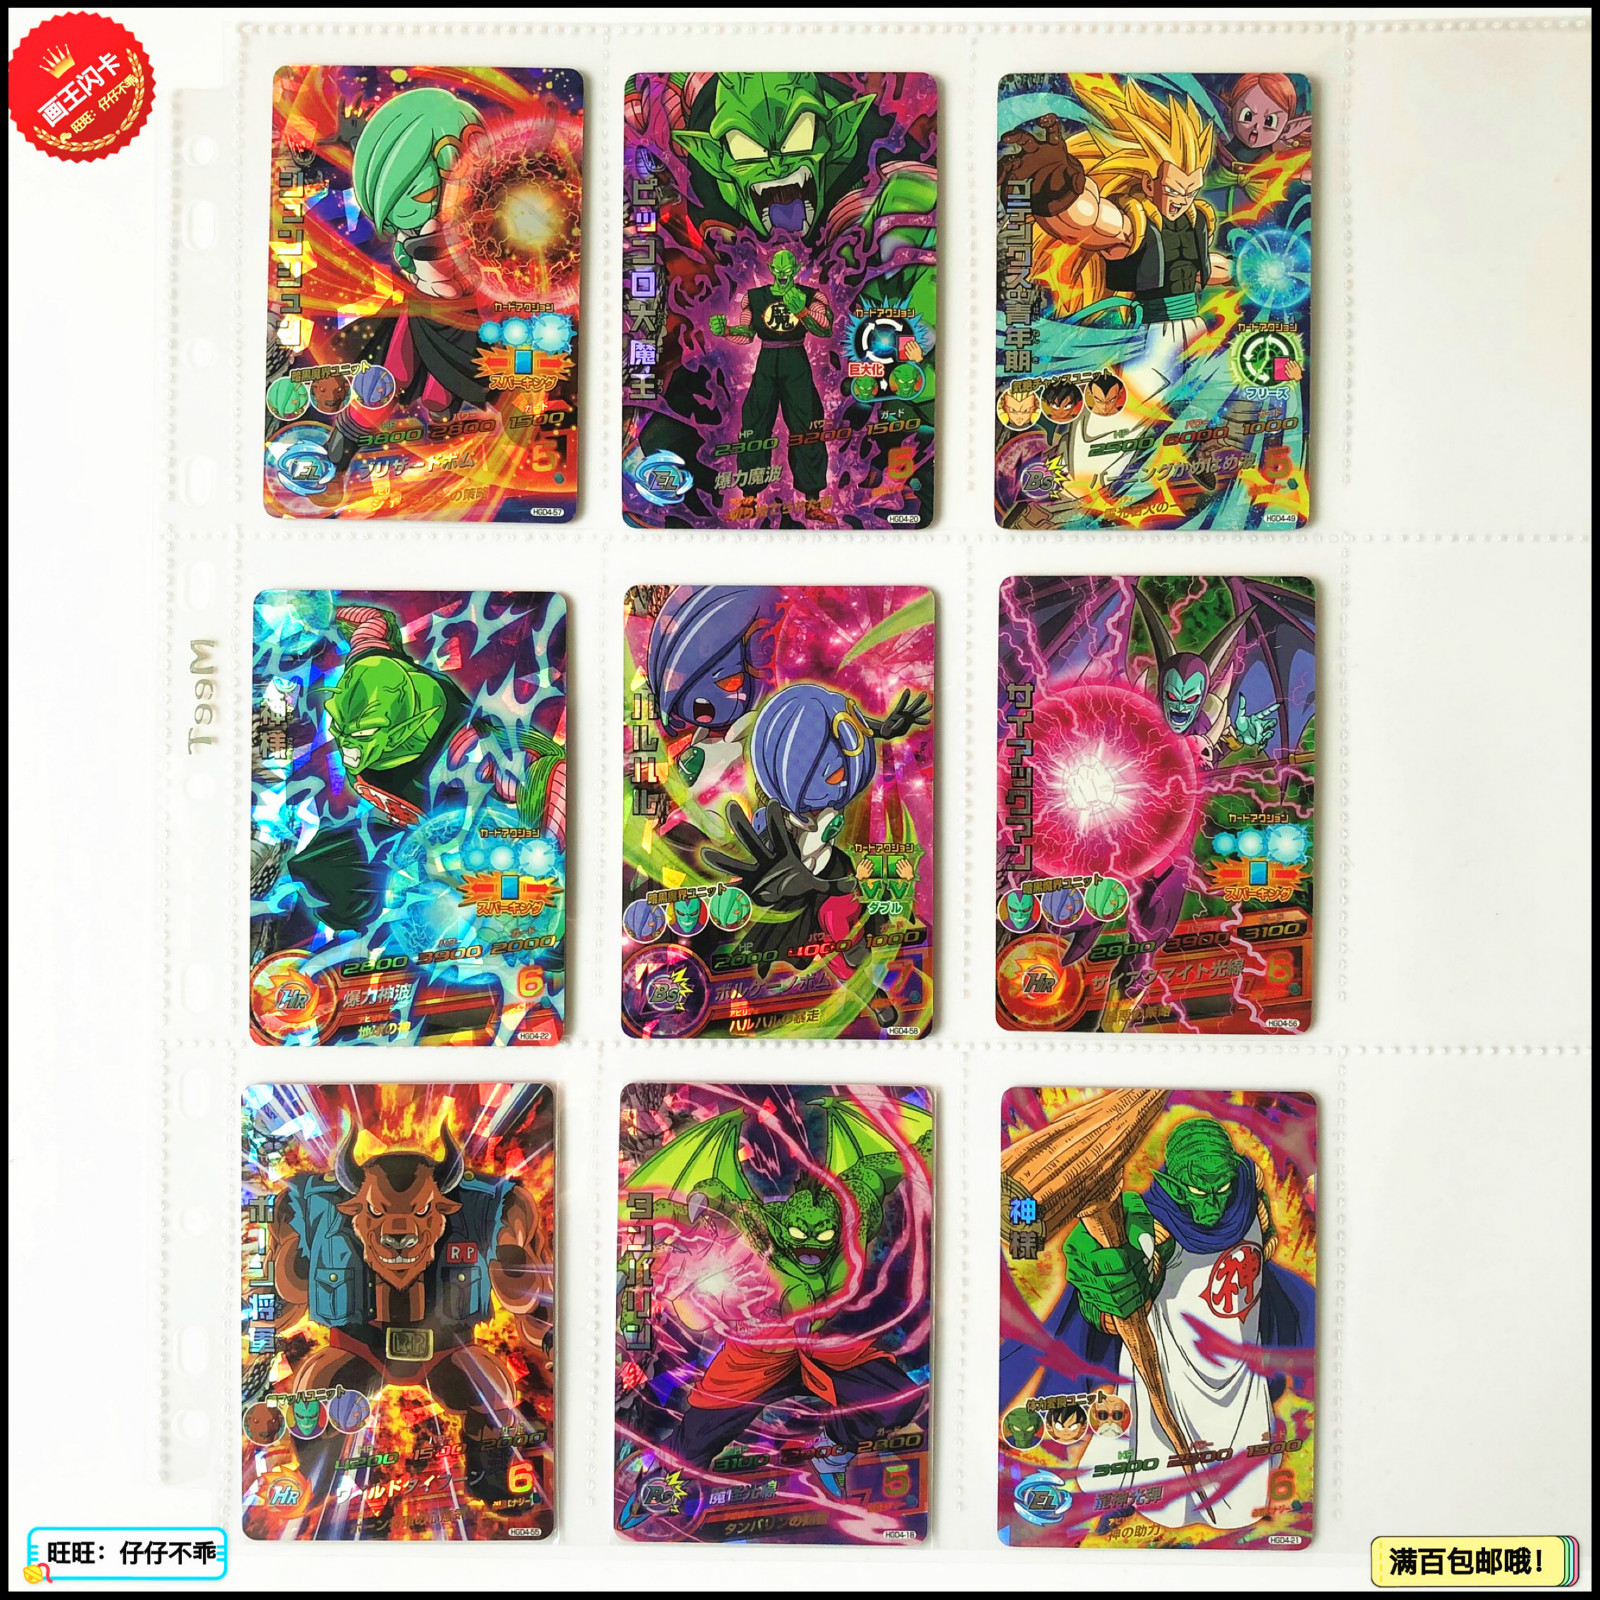 Japan Original Dragon Ball Hero Card SR Flash 3 Stars HGD4 Goku Toys Hobbies Collectibles Game Collection Anime Cards